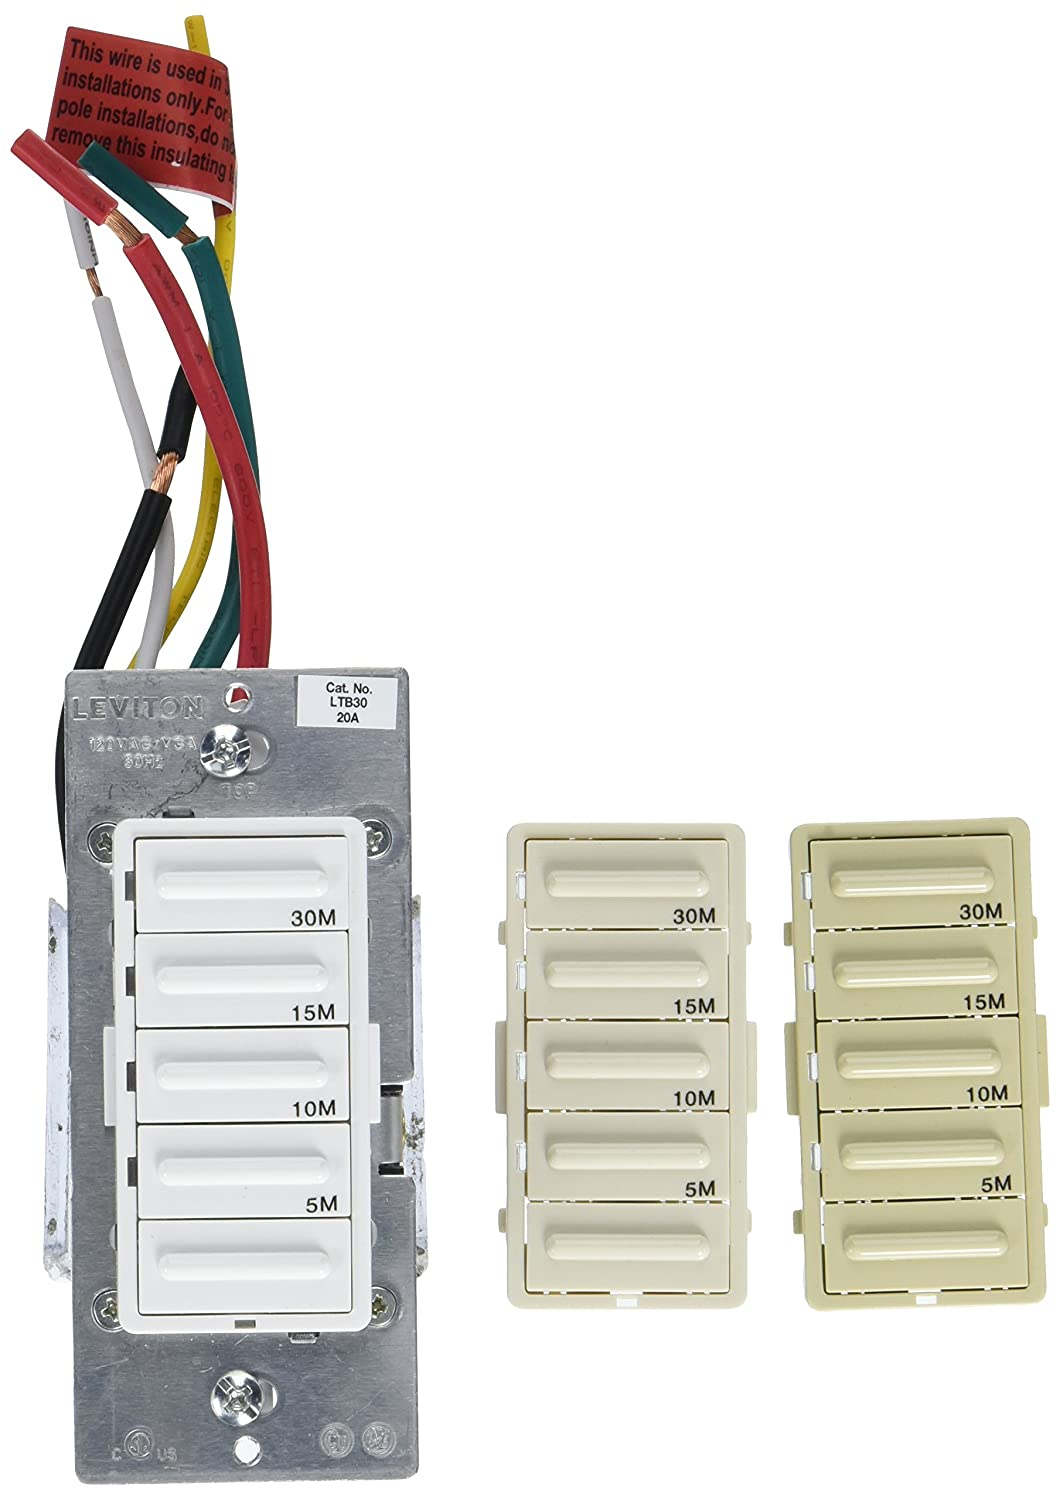 Wiring Diagram Leviton Ltb30 Trusted Diagrams O4 C10 Wire 1lz Decora 1800w Incandescent 20a Resistive Inductive Light Switch